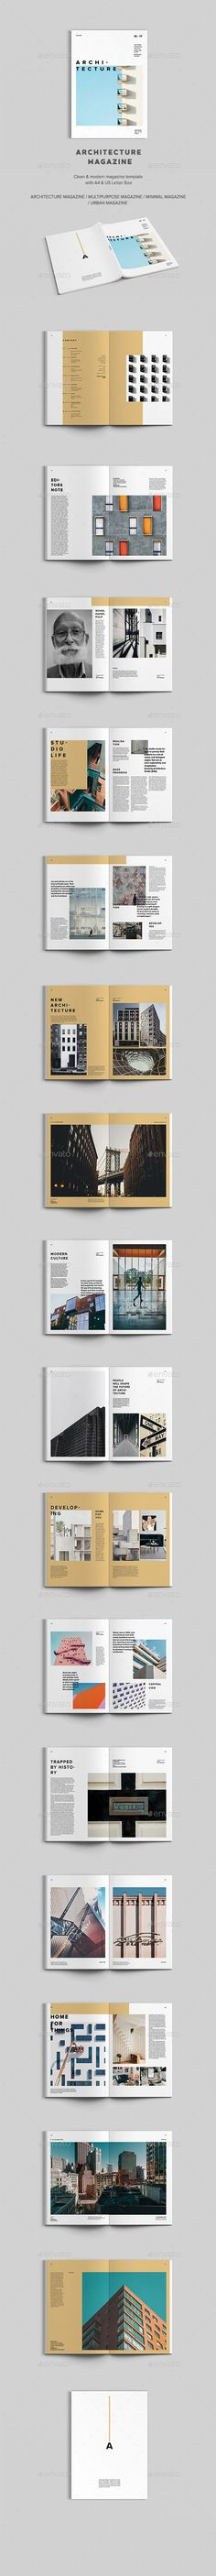 Architecture Magazine — InDesign INDD #minimal • Download ➝ https://graphicriver.net/item/architecture-magazine/19475921?ref=pxcr